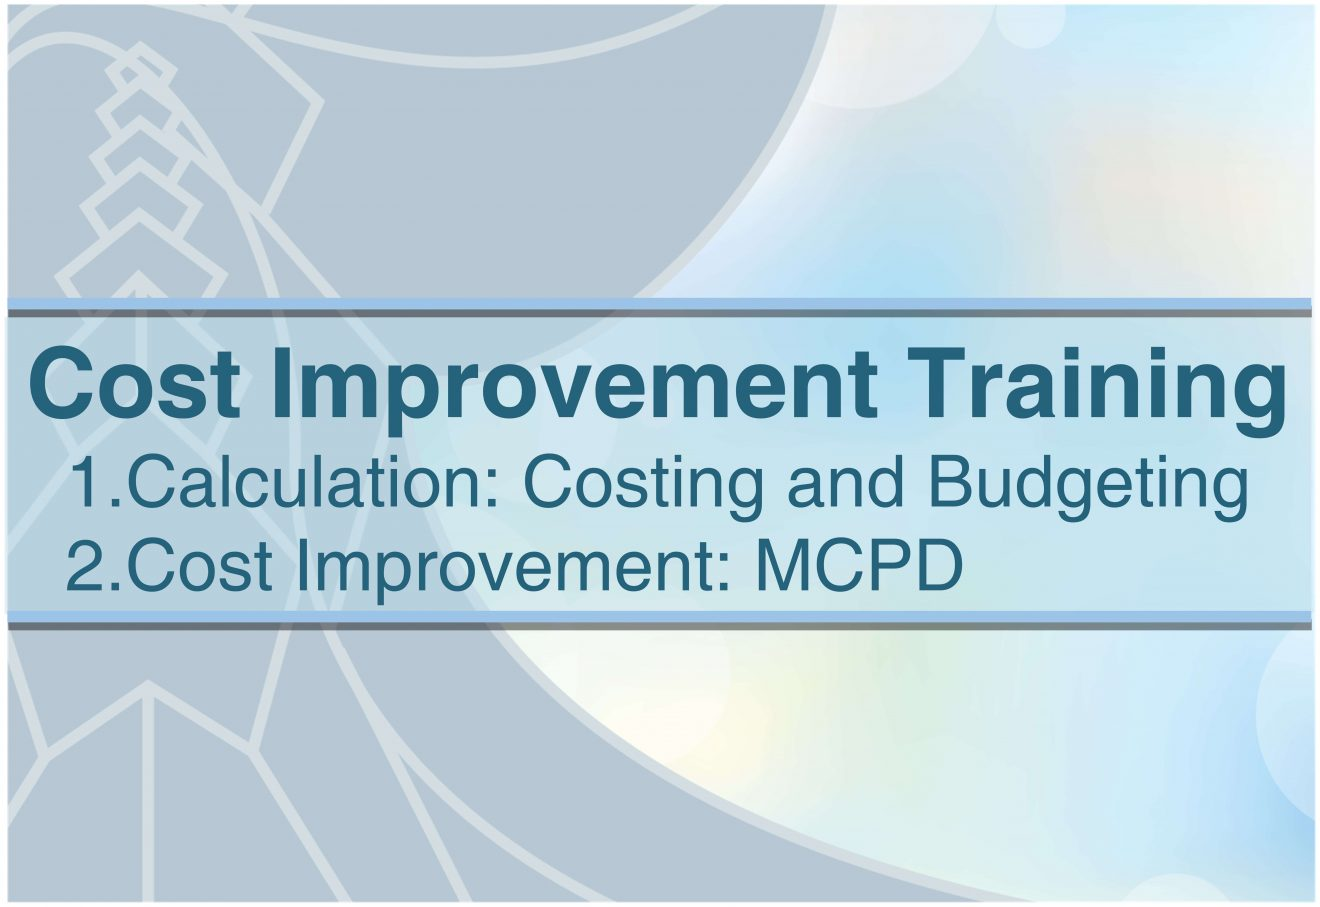 Cost Improvement Training by Exegens